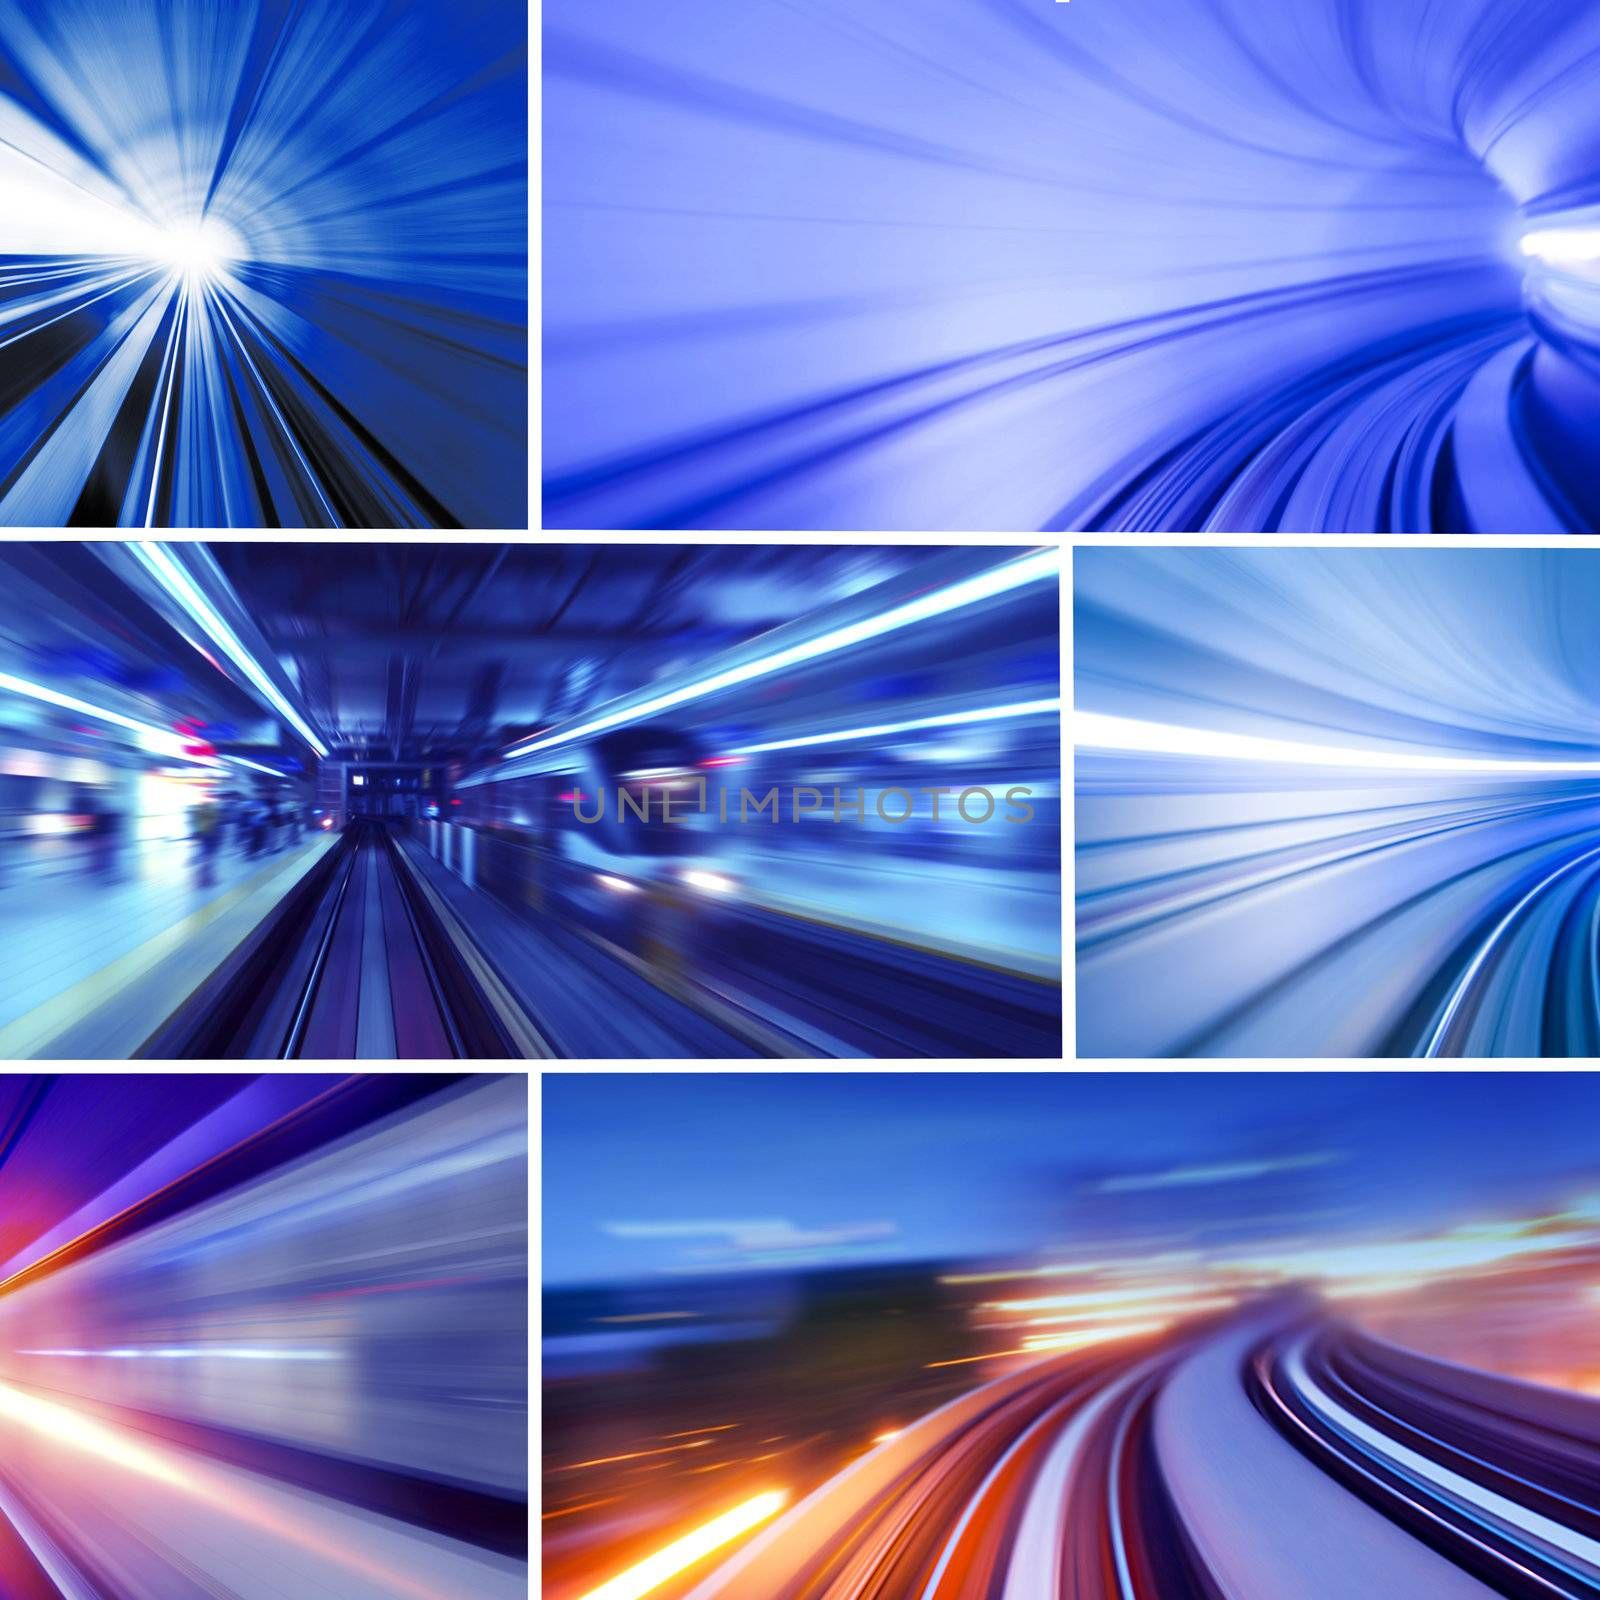 Collage of transportation concept photo. All photo belongs to me.